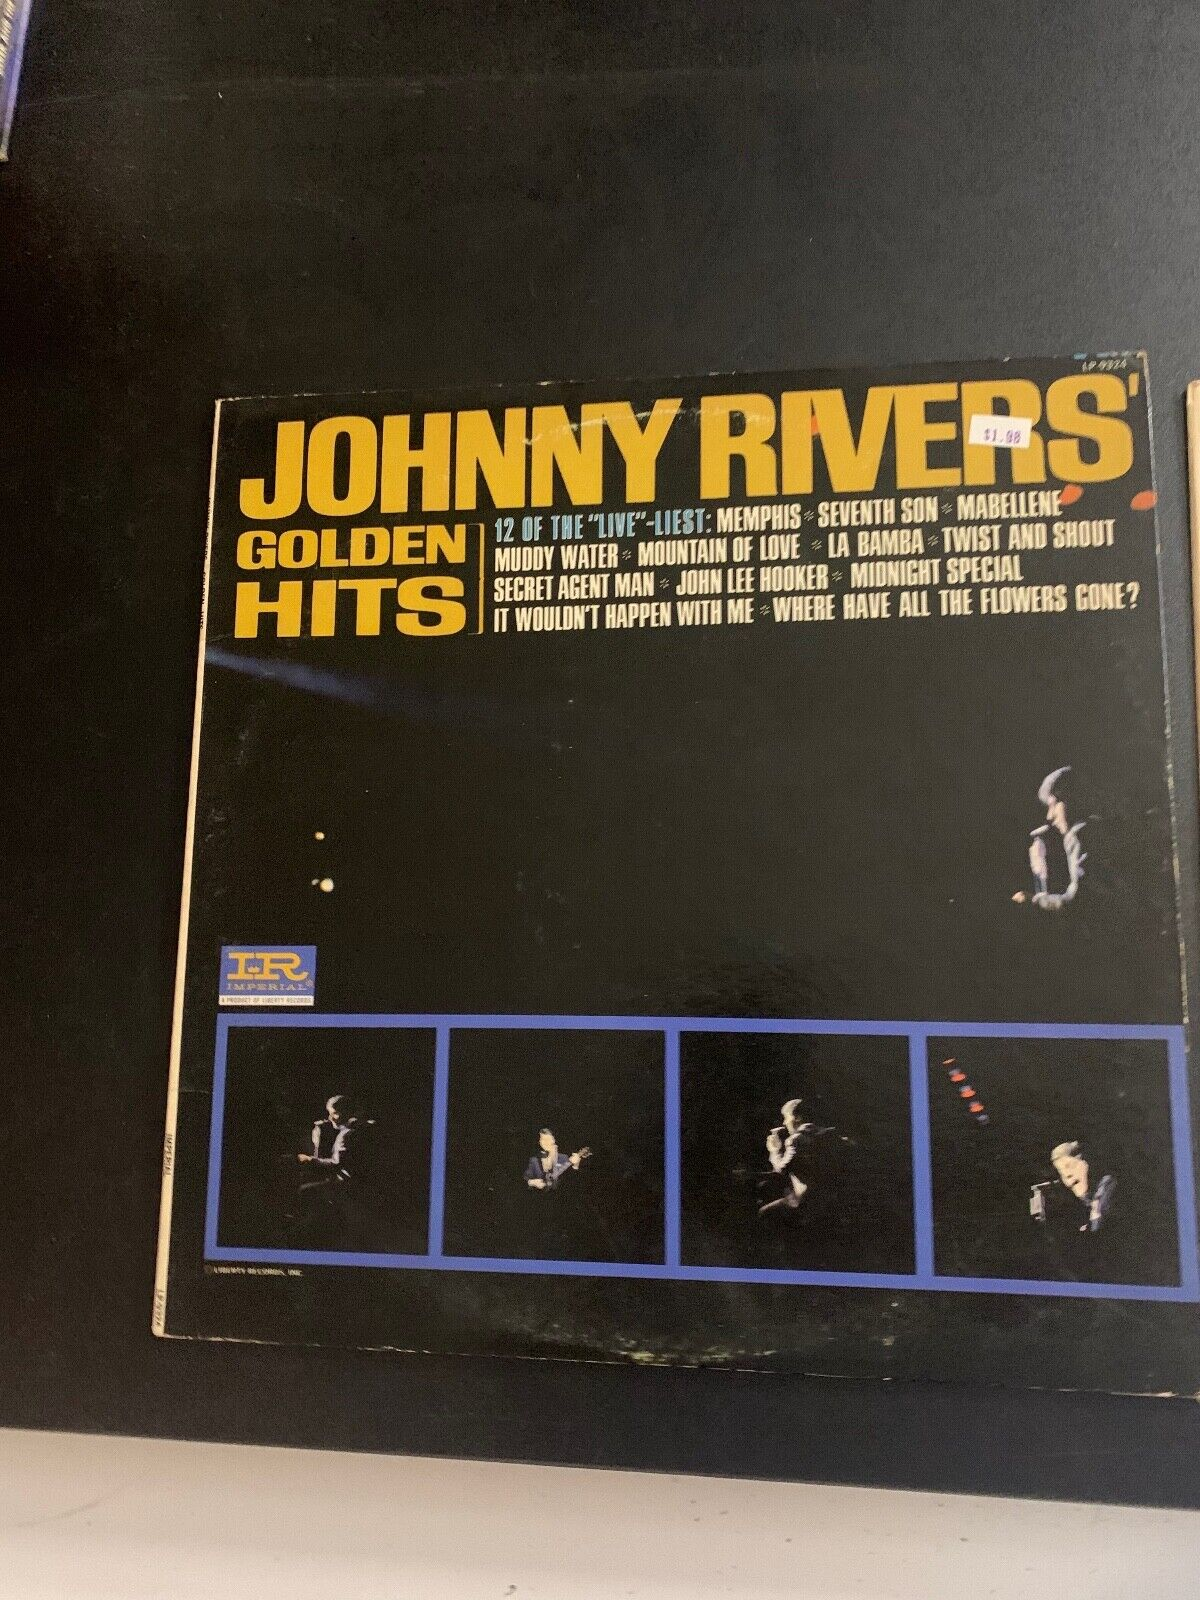 LP RECORD - JOHNNY RIVERS - GOLDEN HITS - IMPERIAL RECORDS - $9.99